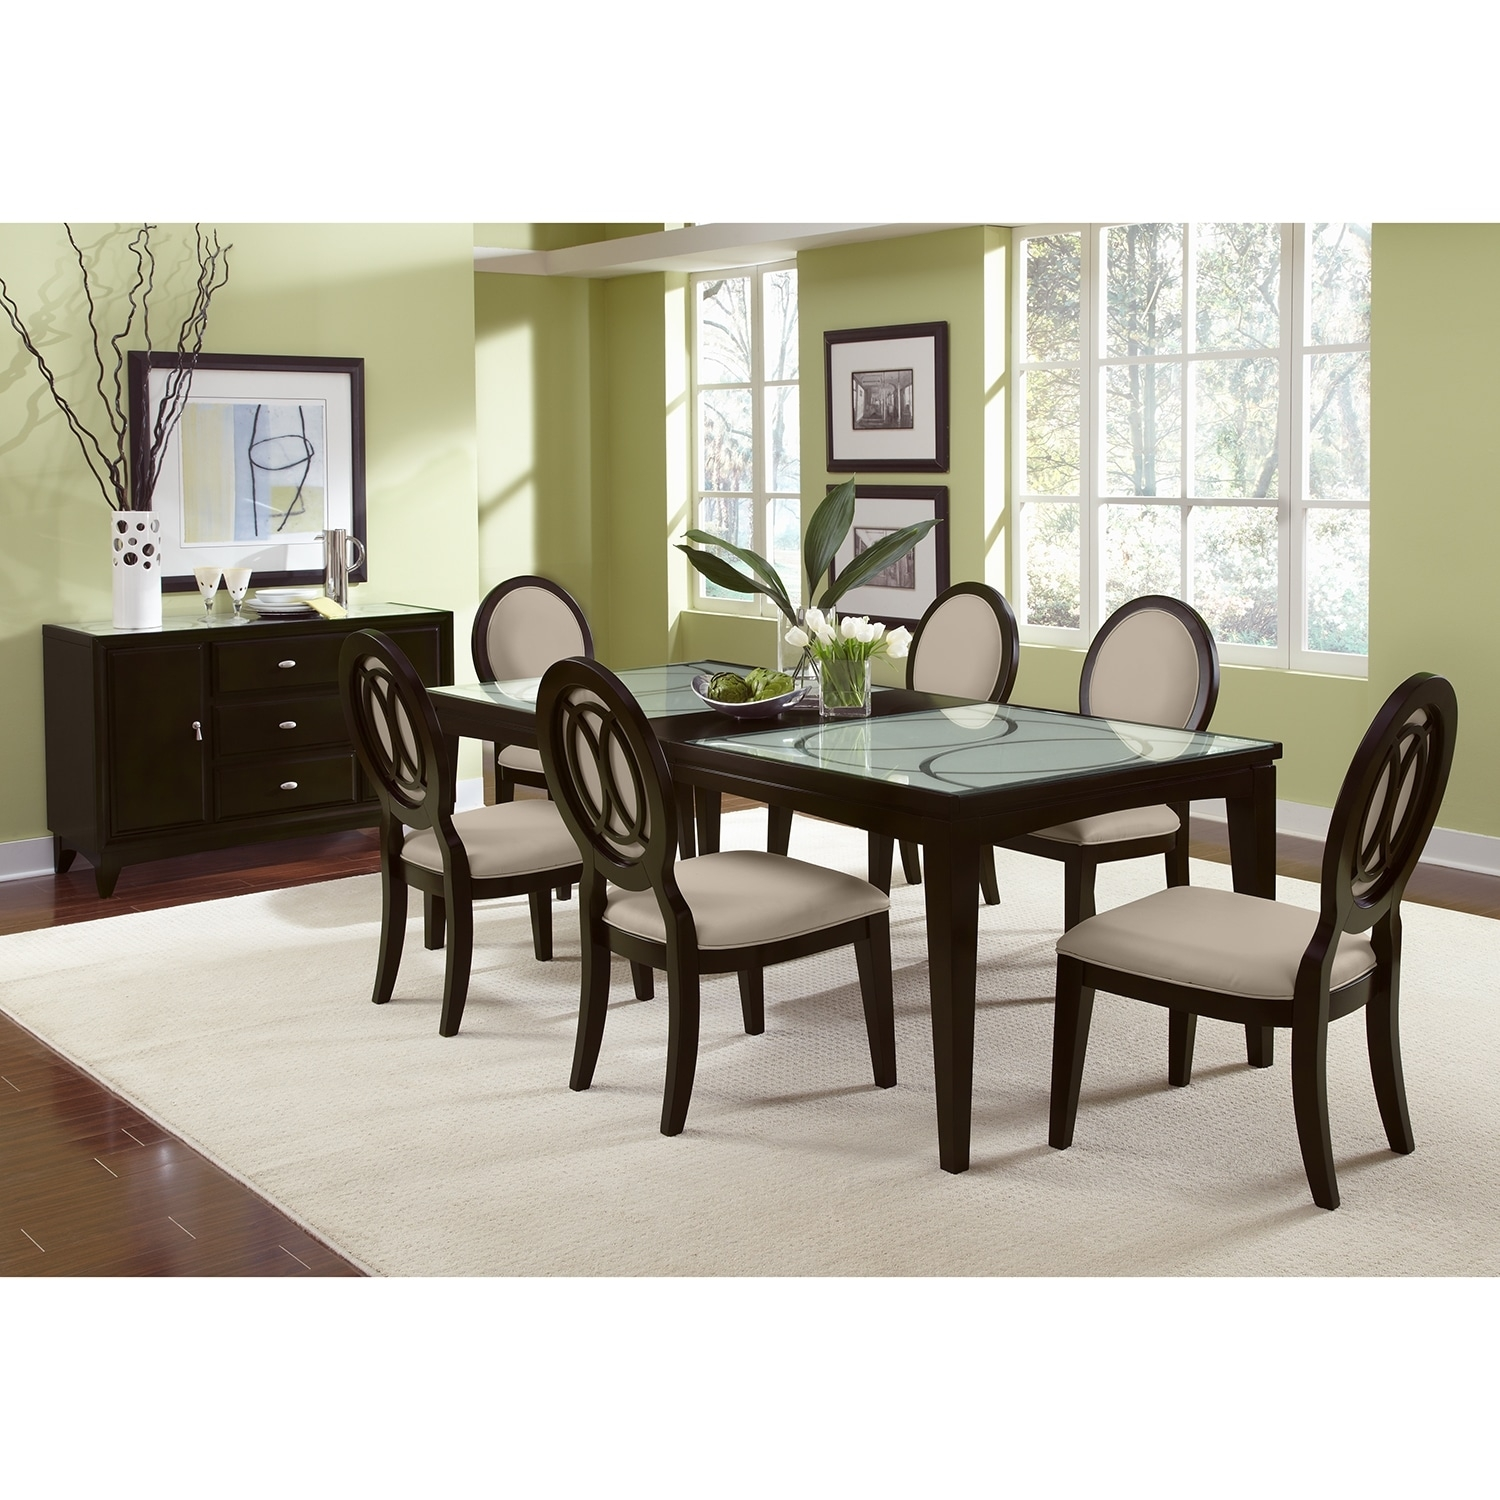 Shop 7 Piece Dining Room Sets Value City Furniture And Mattresses Layjao